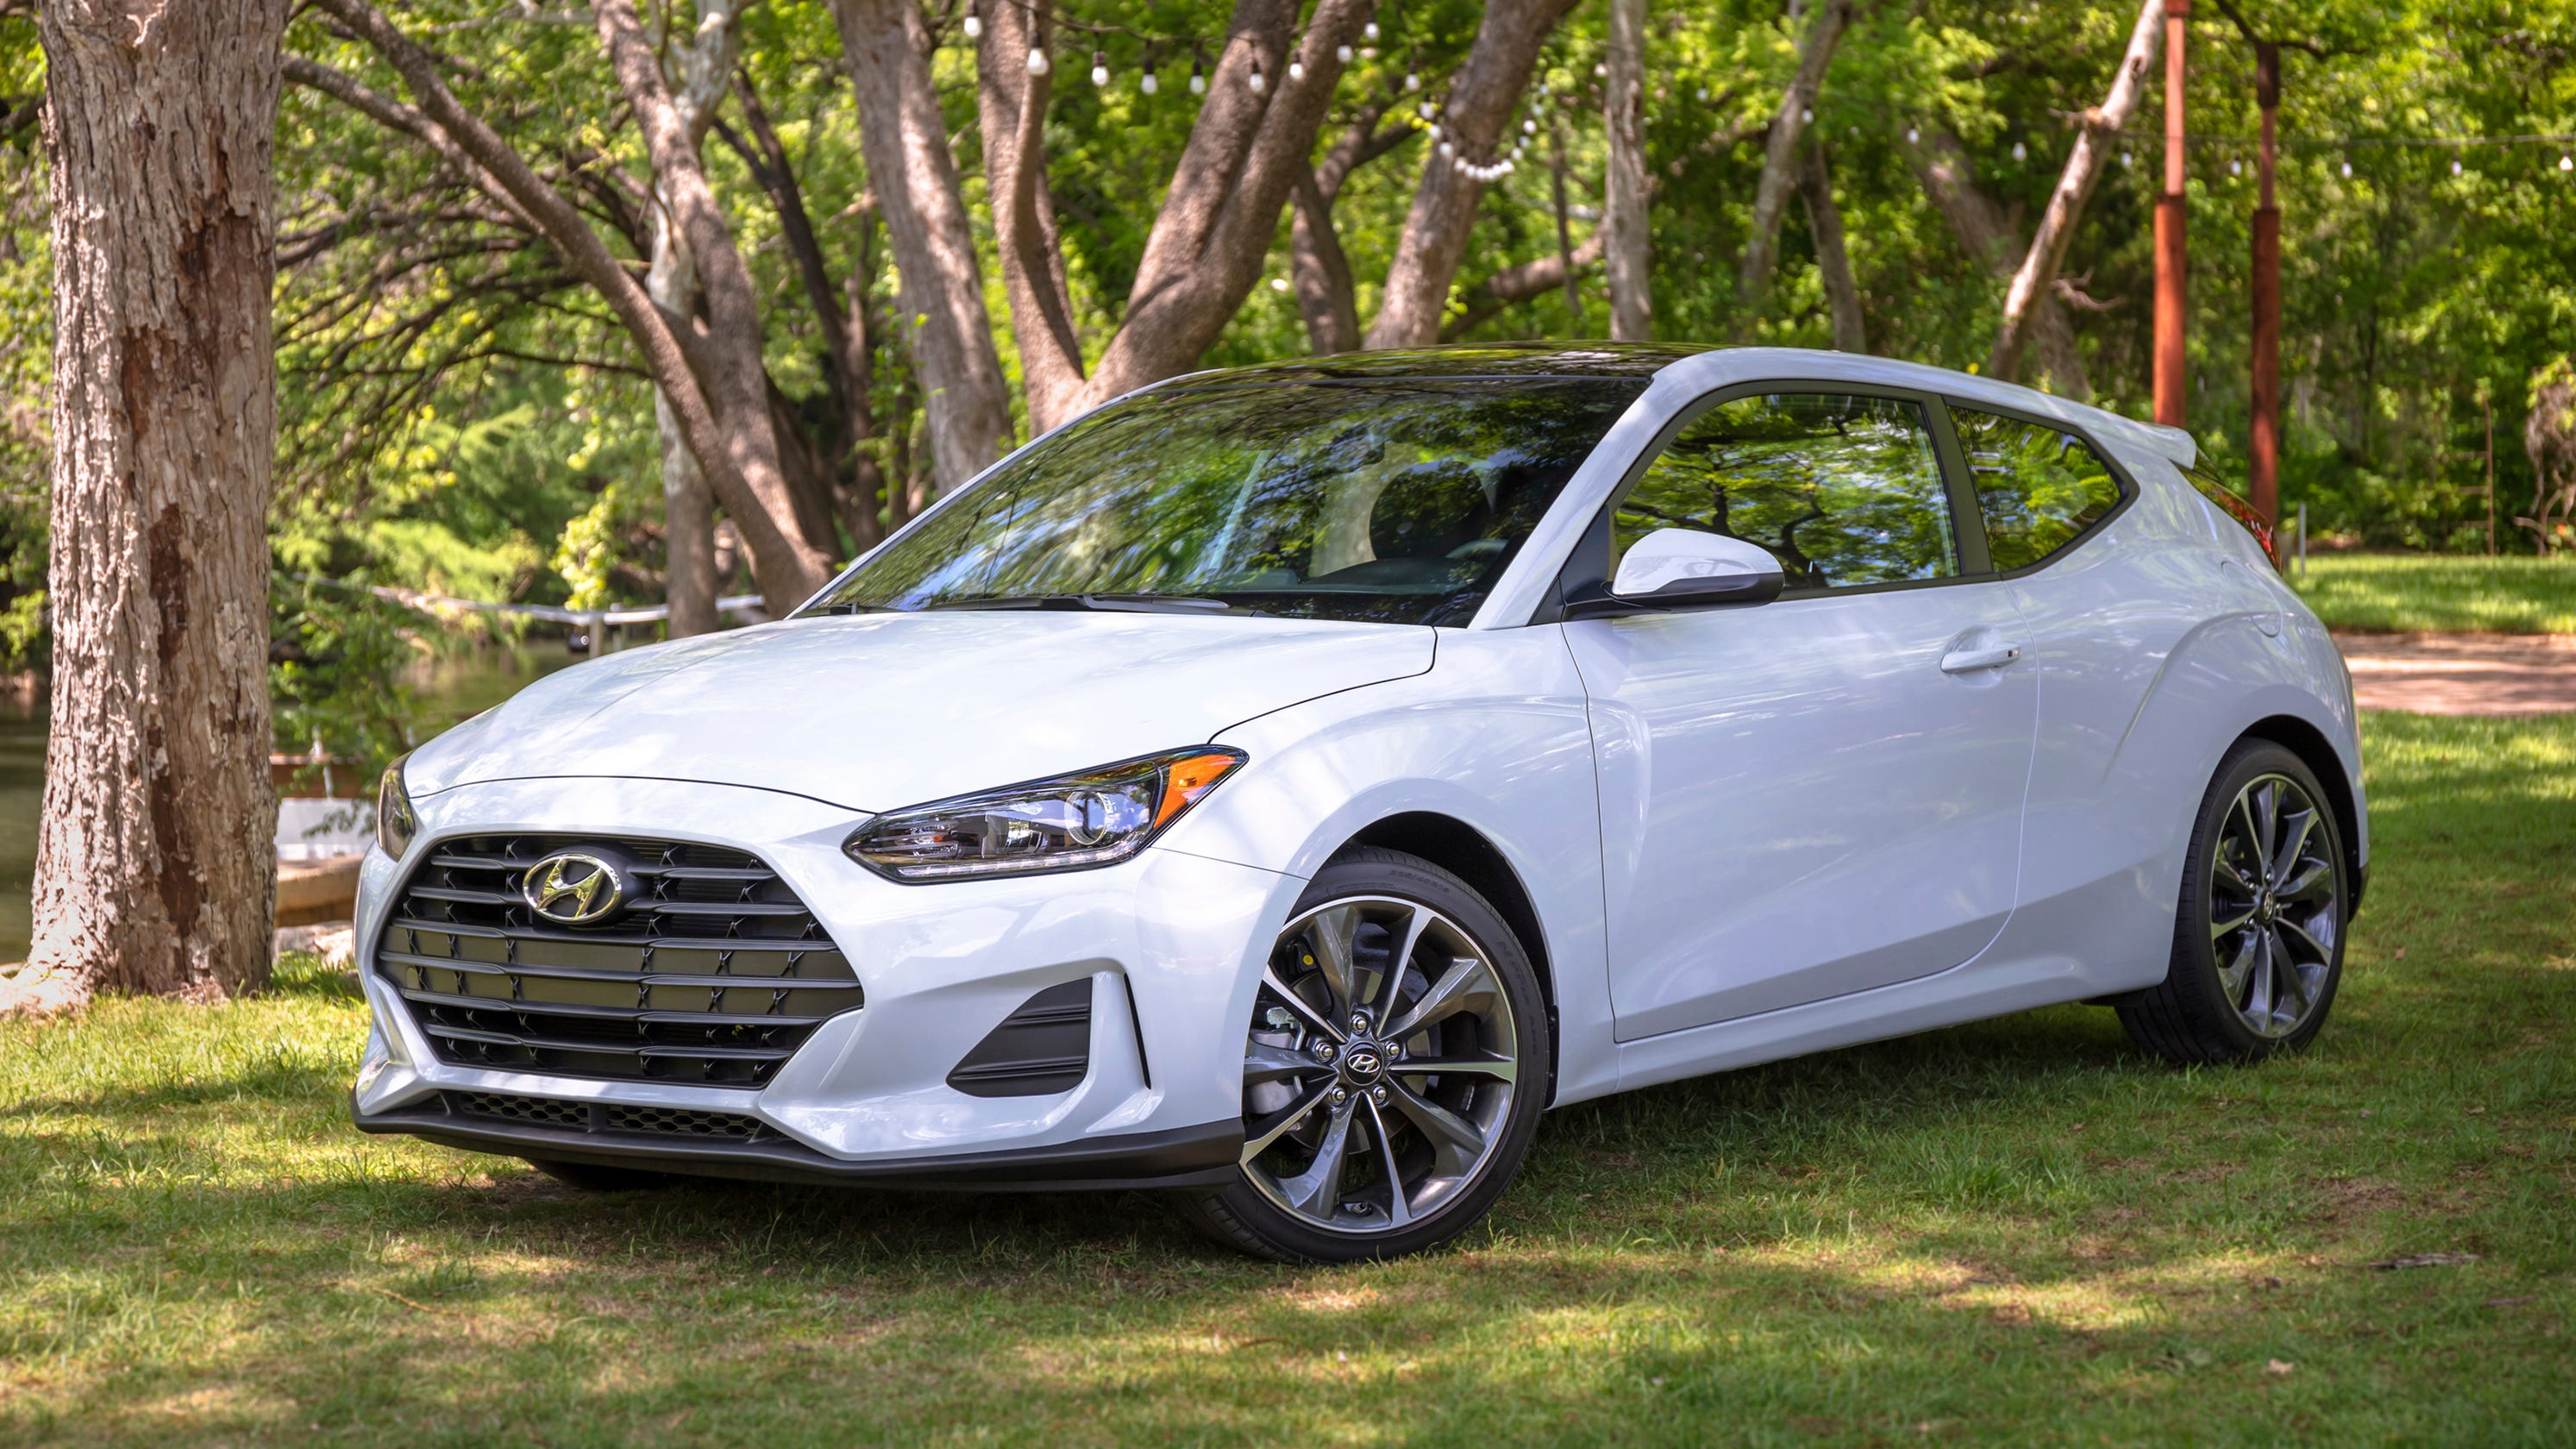 What Are The Top Picks For Performance Hatchbacks Edmunds Compares Models